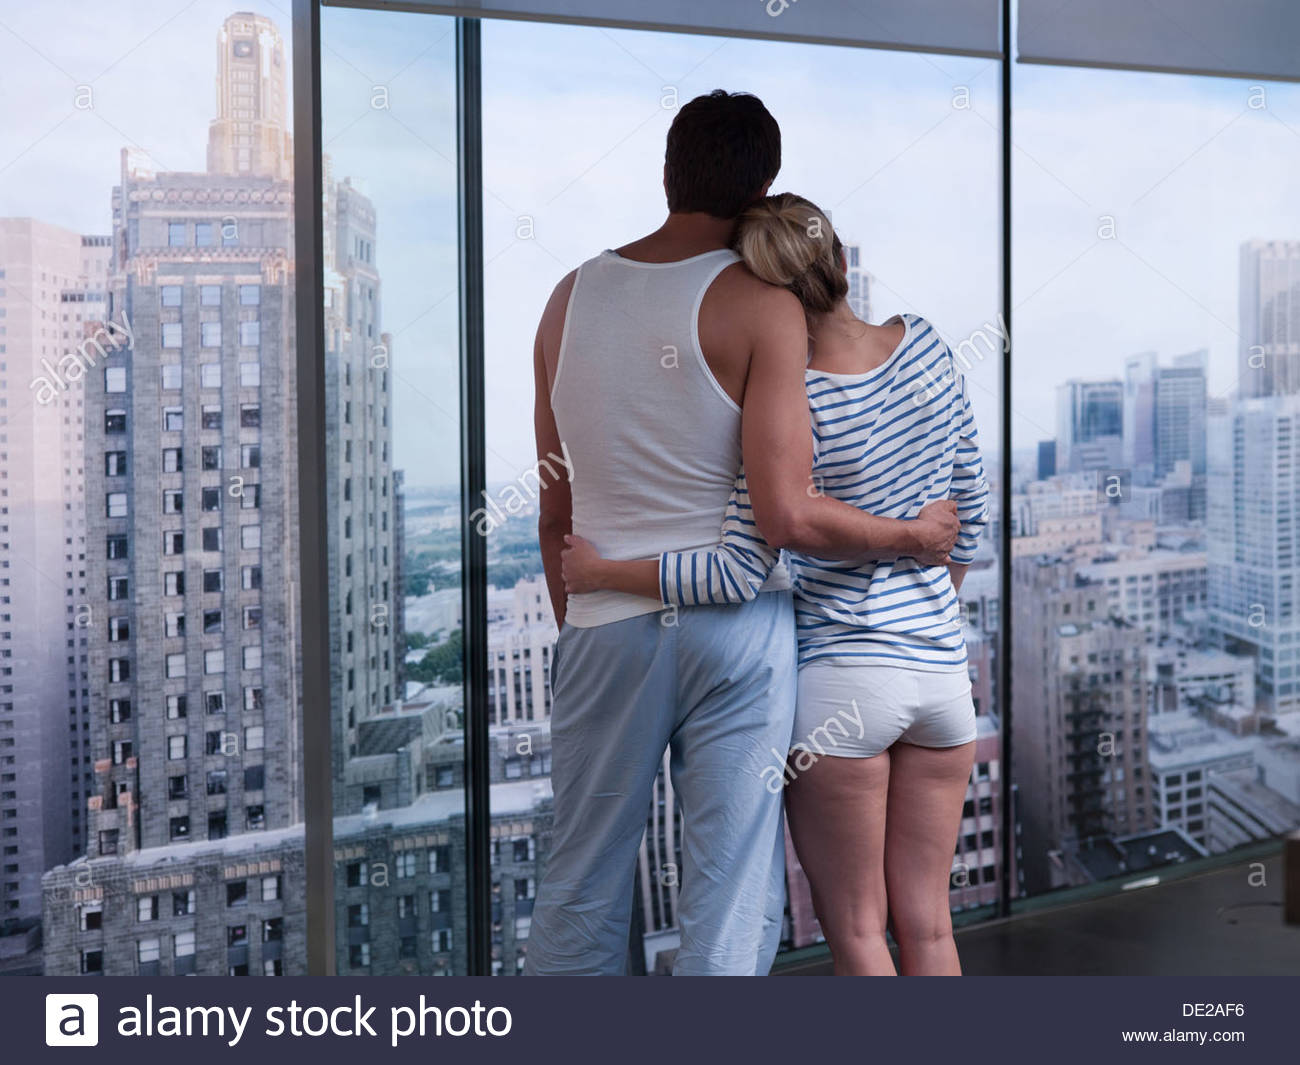 Couple hugging and looking outside - Stock Image